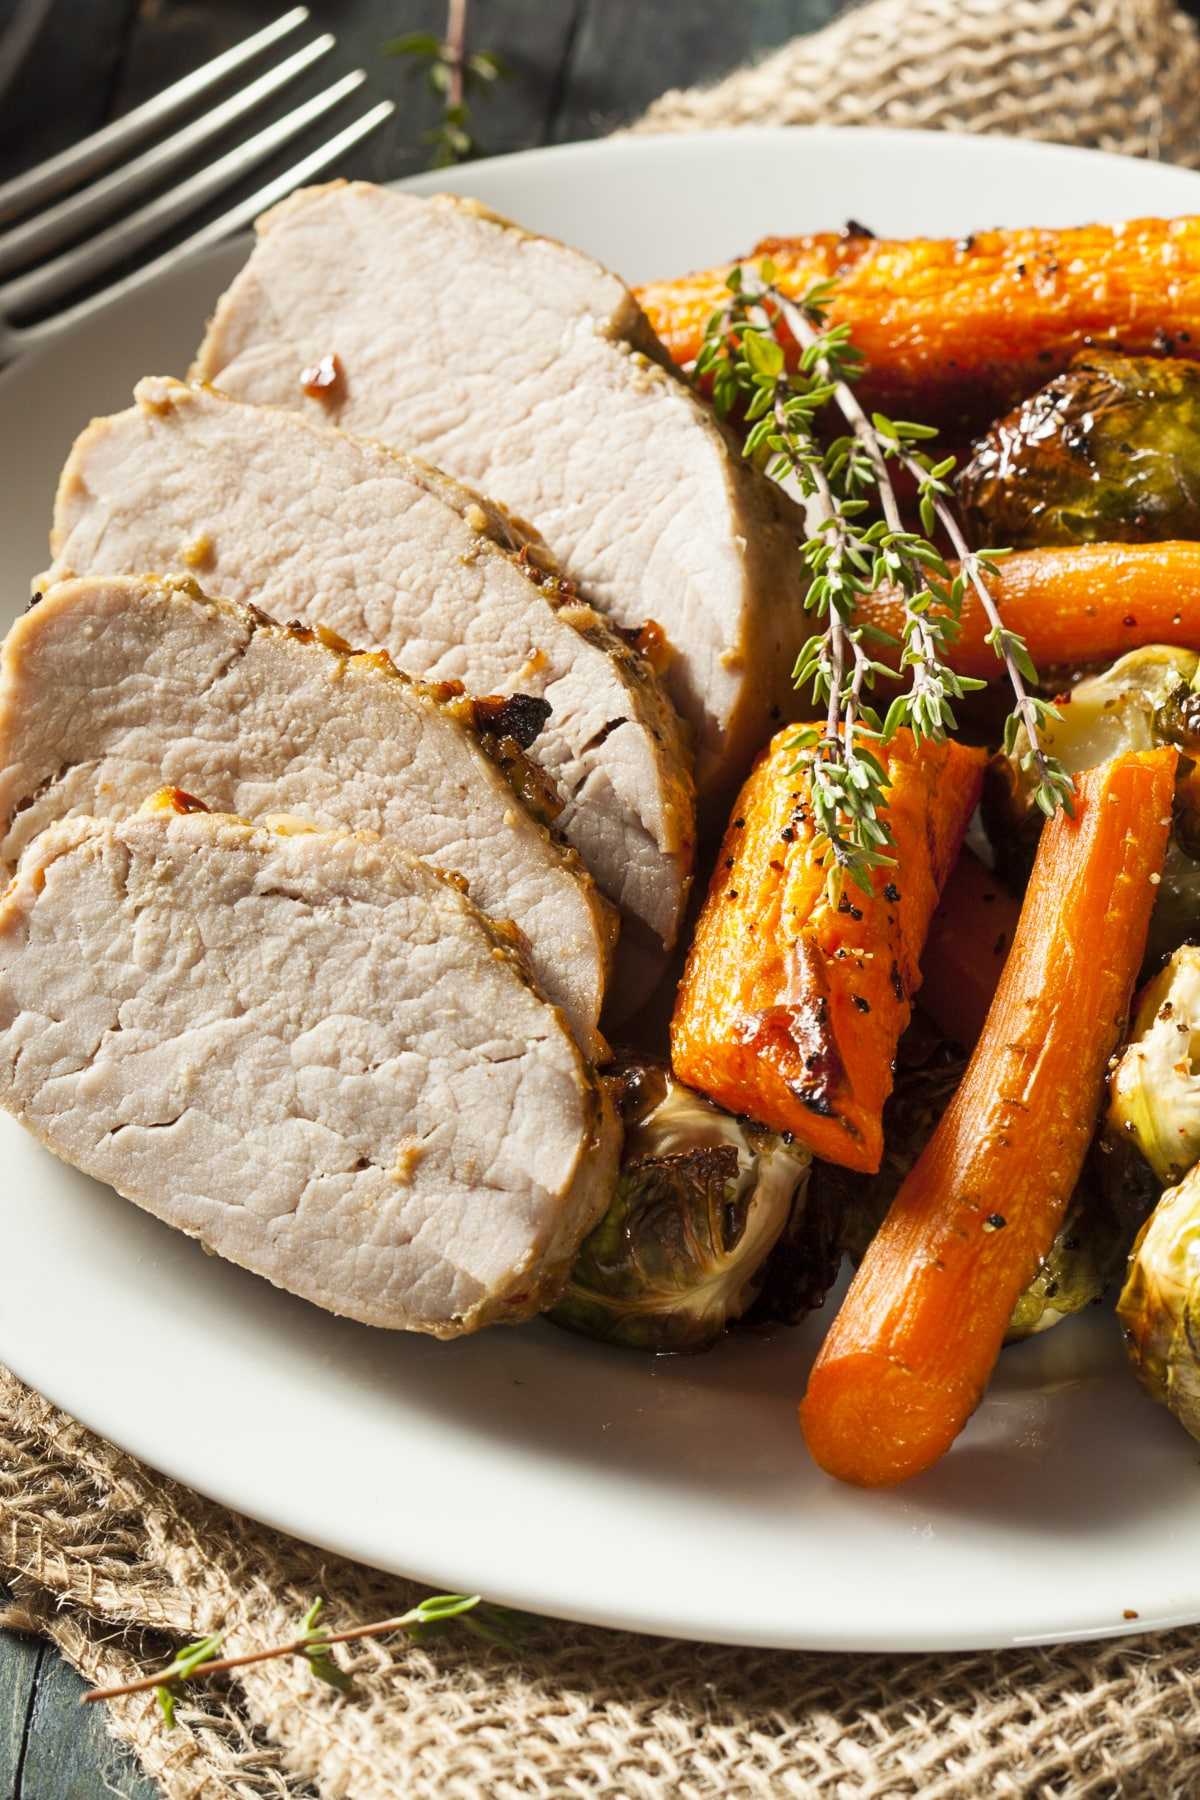 Instant Pot Pork Roast served with carrots and brussels sprouts. An easy, delicious dinner.